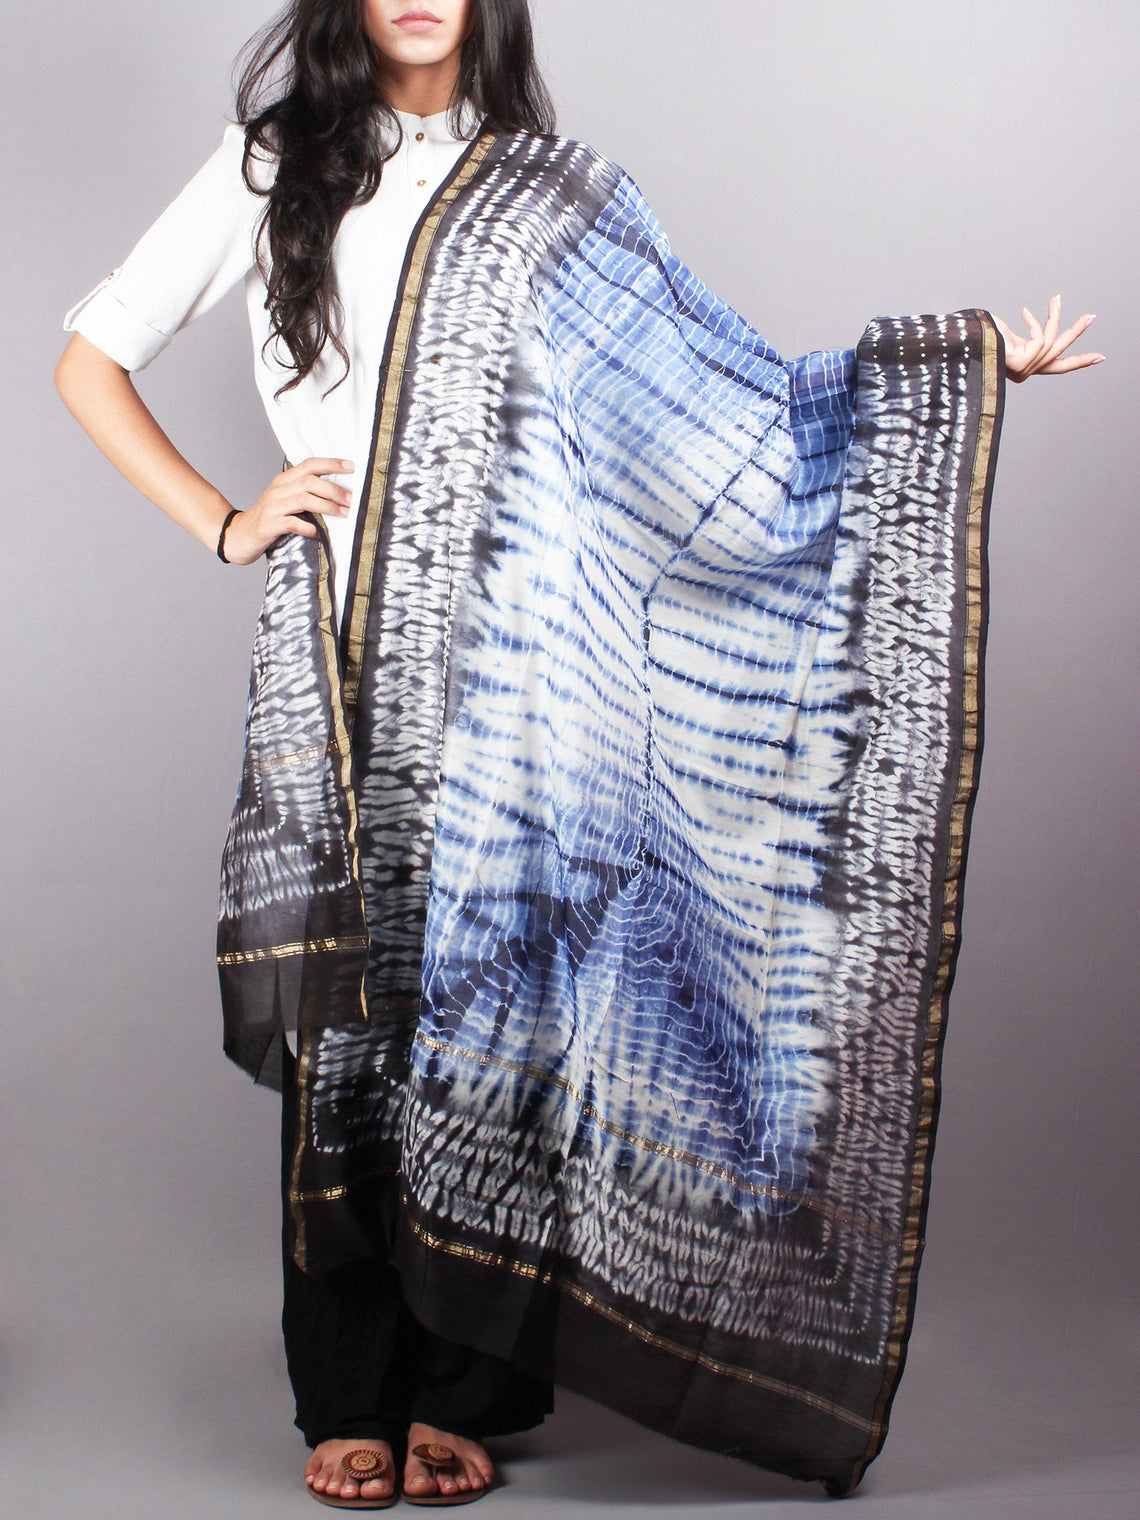 Indigo Black Chanderi Shibori Dyed in Natural Colors Dupatta with Bandani Touch - D0417050